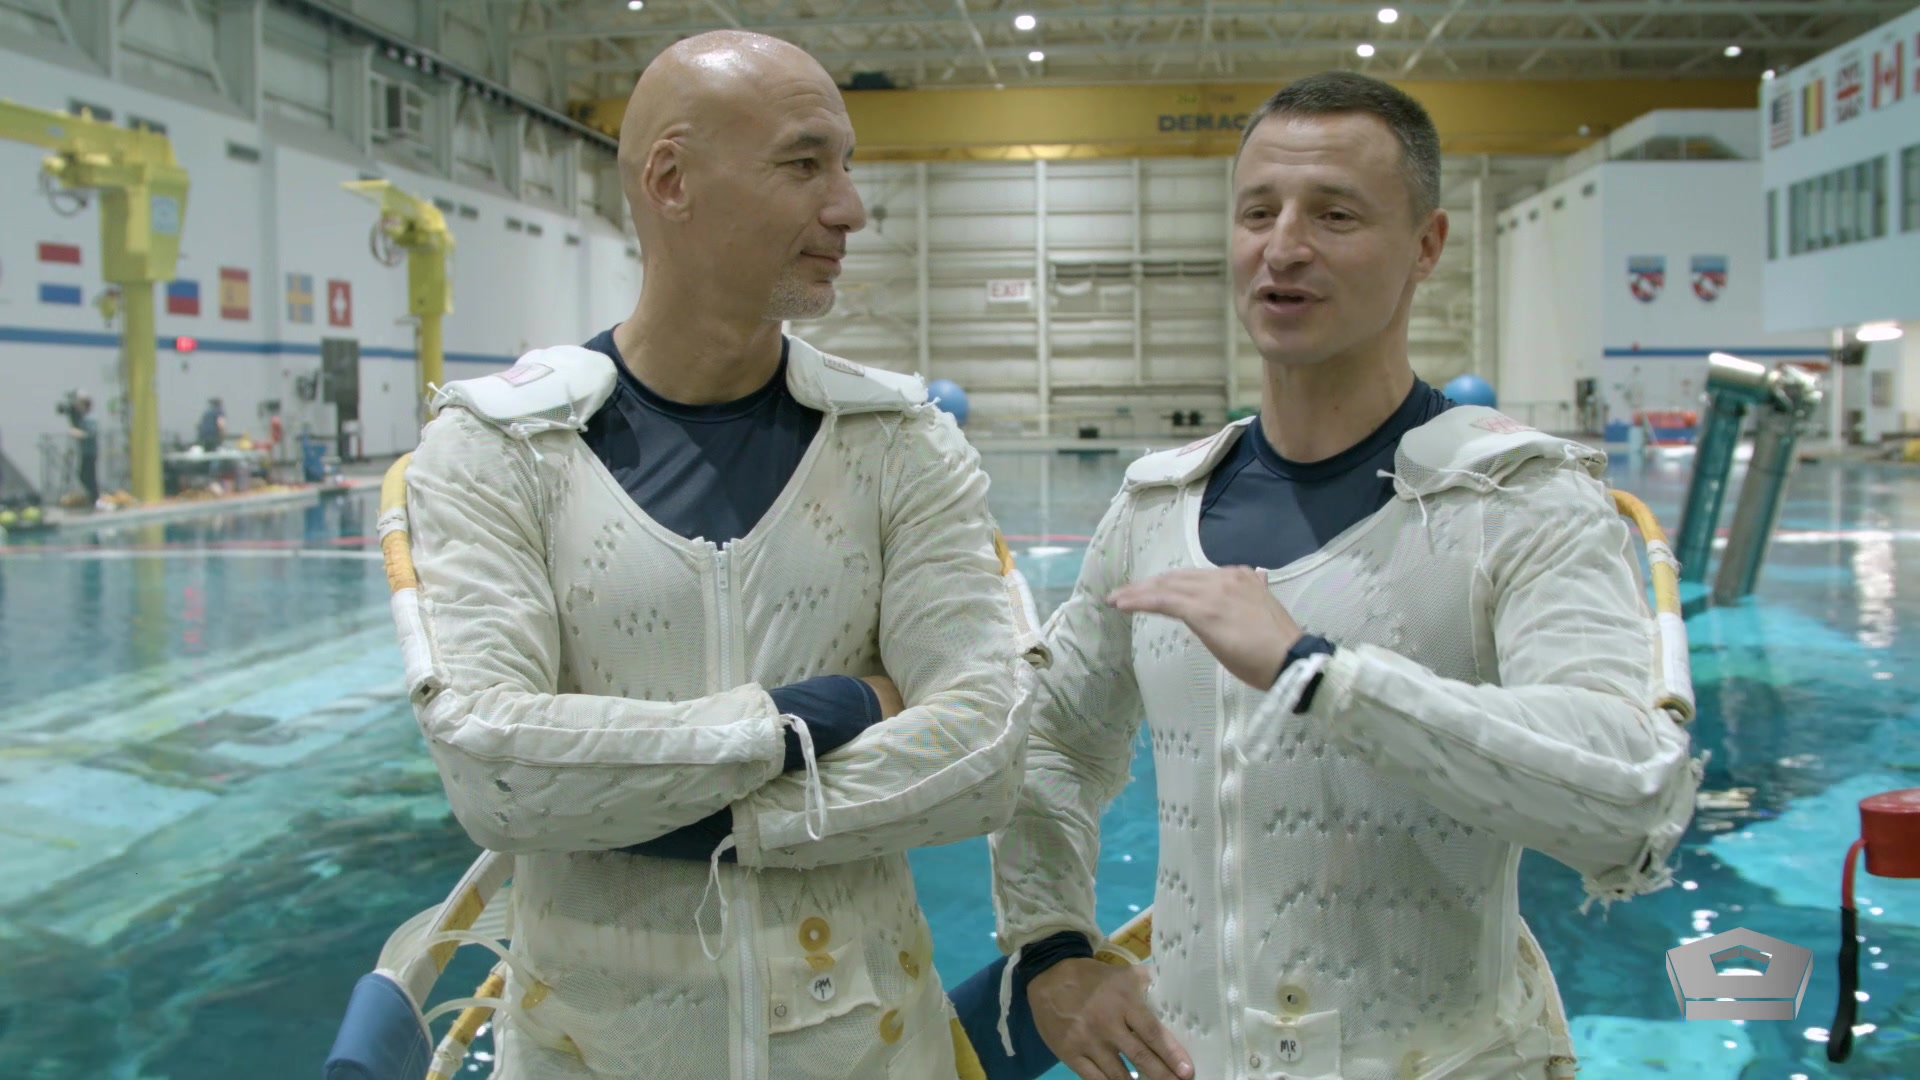 Two astronauts stand in front of a pool.